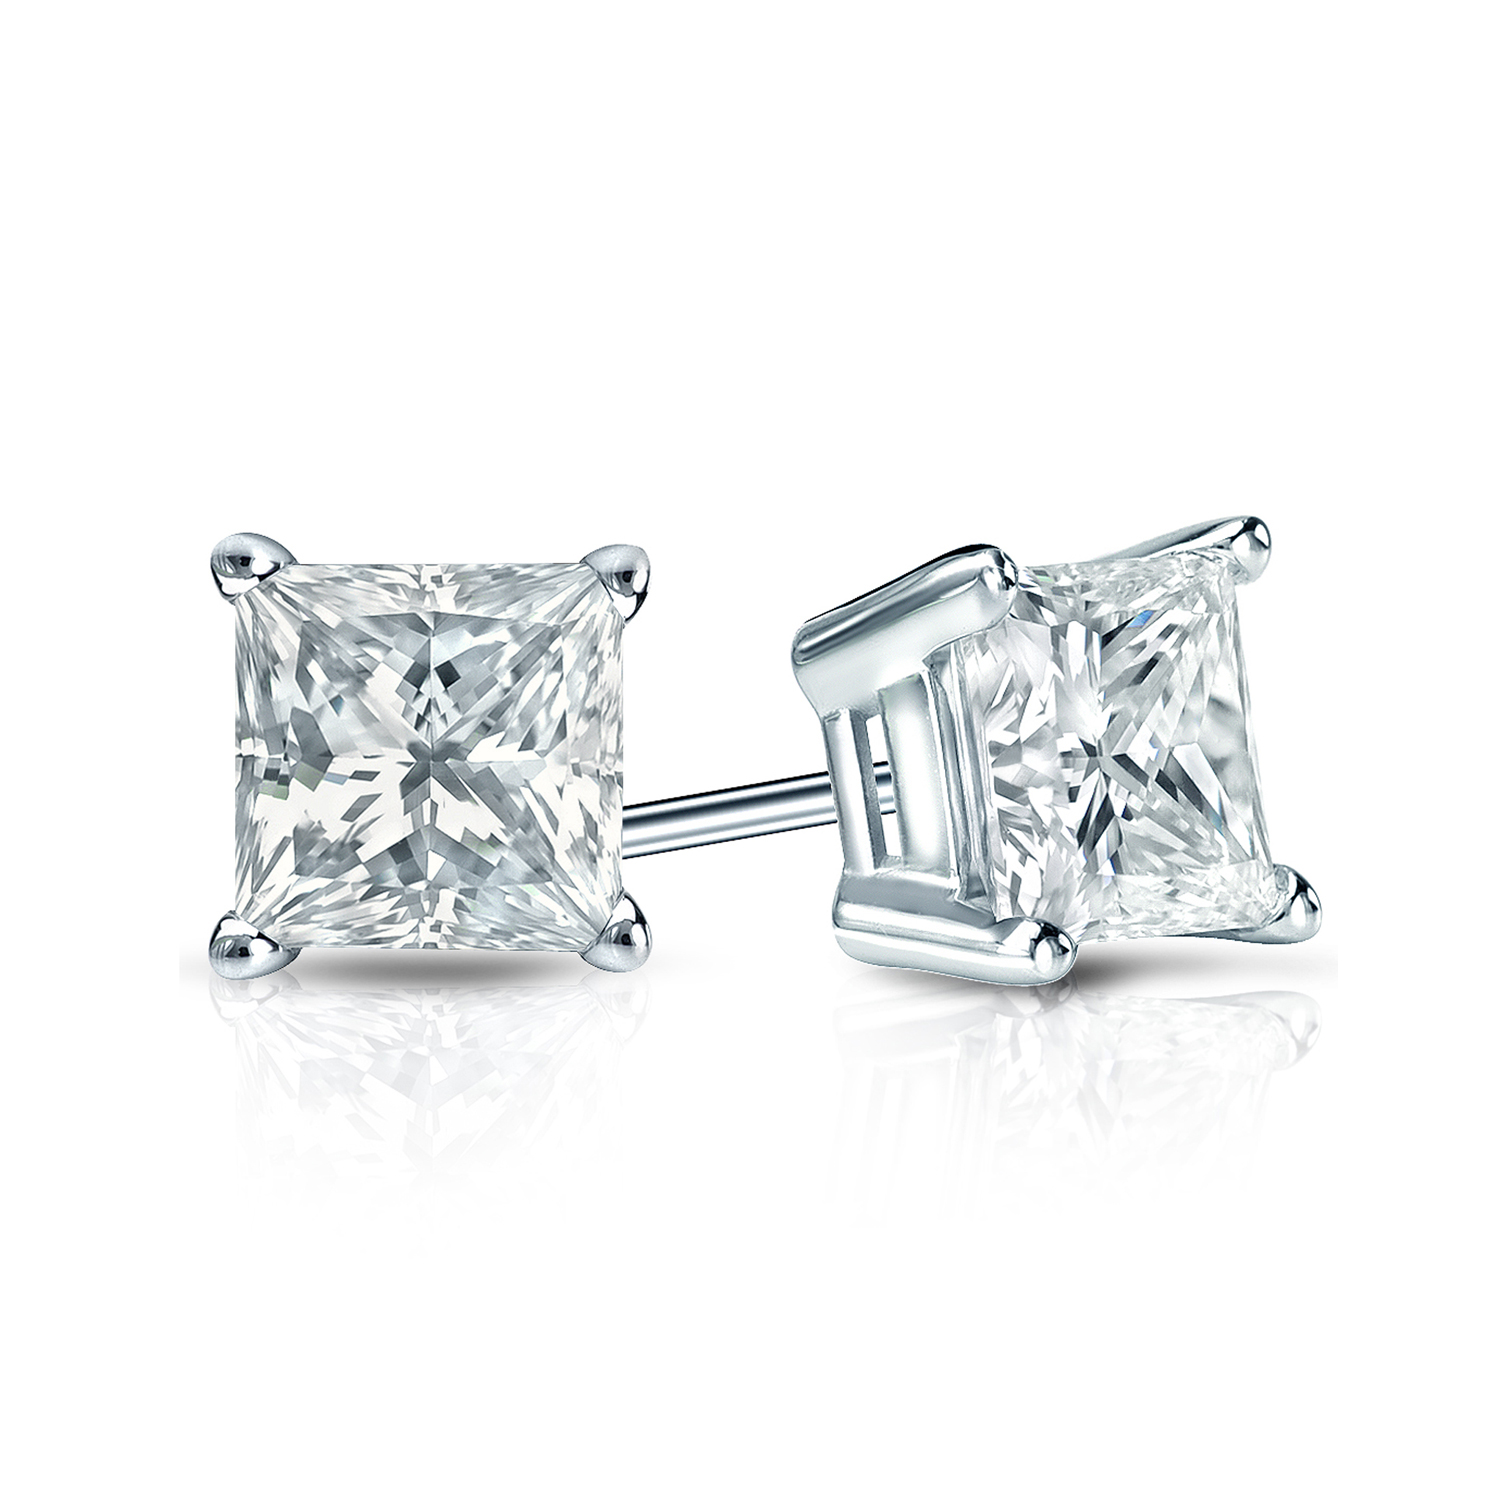 Certified 2.00 cttw Princess Diamond Stud Earrings in 14k White Gold 4-Prong Basket (G-H, SI)